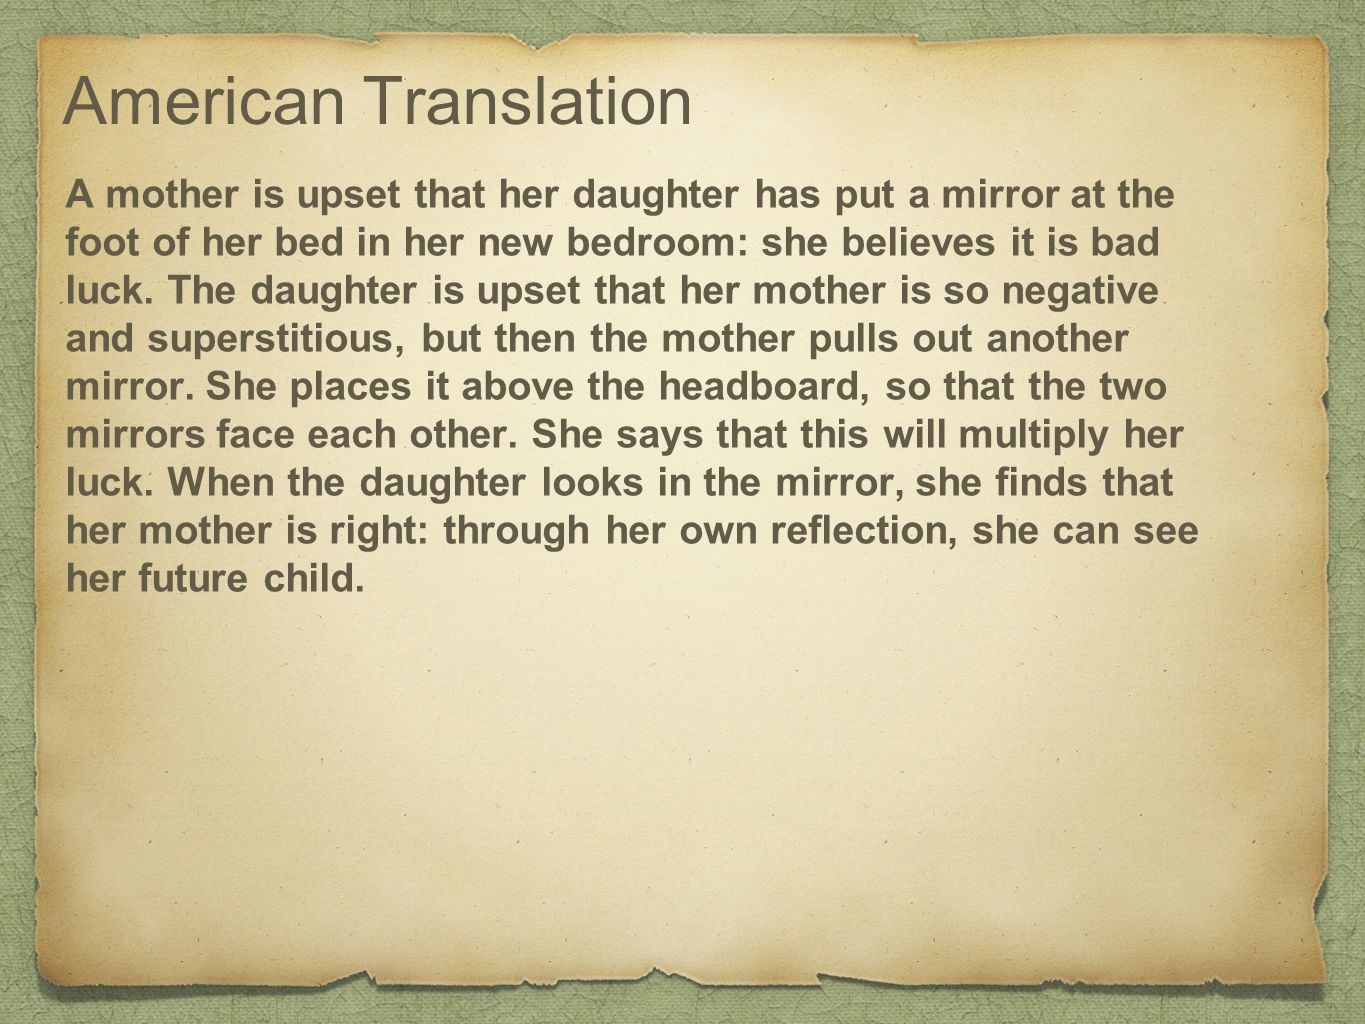 American Translation A mother is upset that her daughter has put a mirror at the foot of her bed in her new bedroom: she believes it is bad luck.